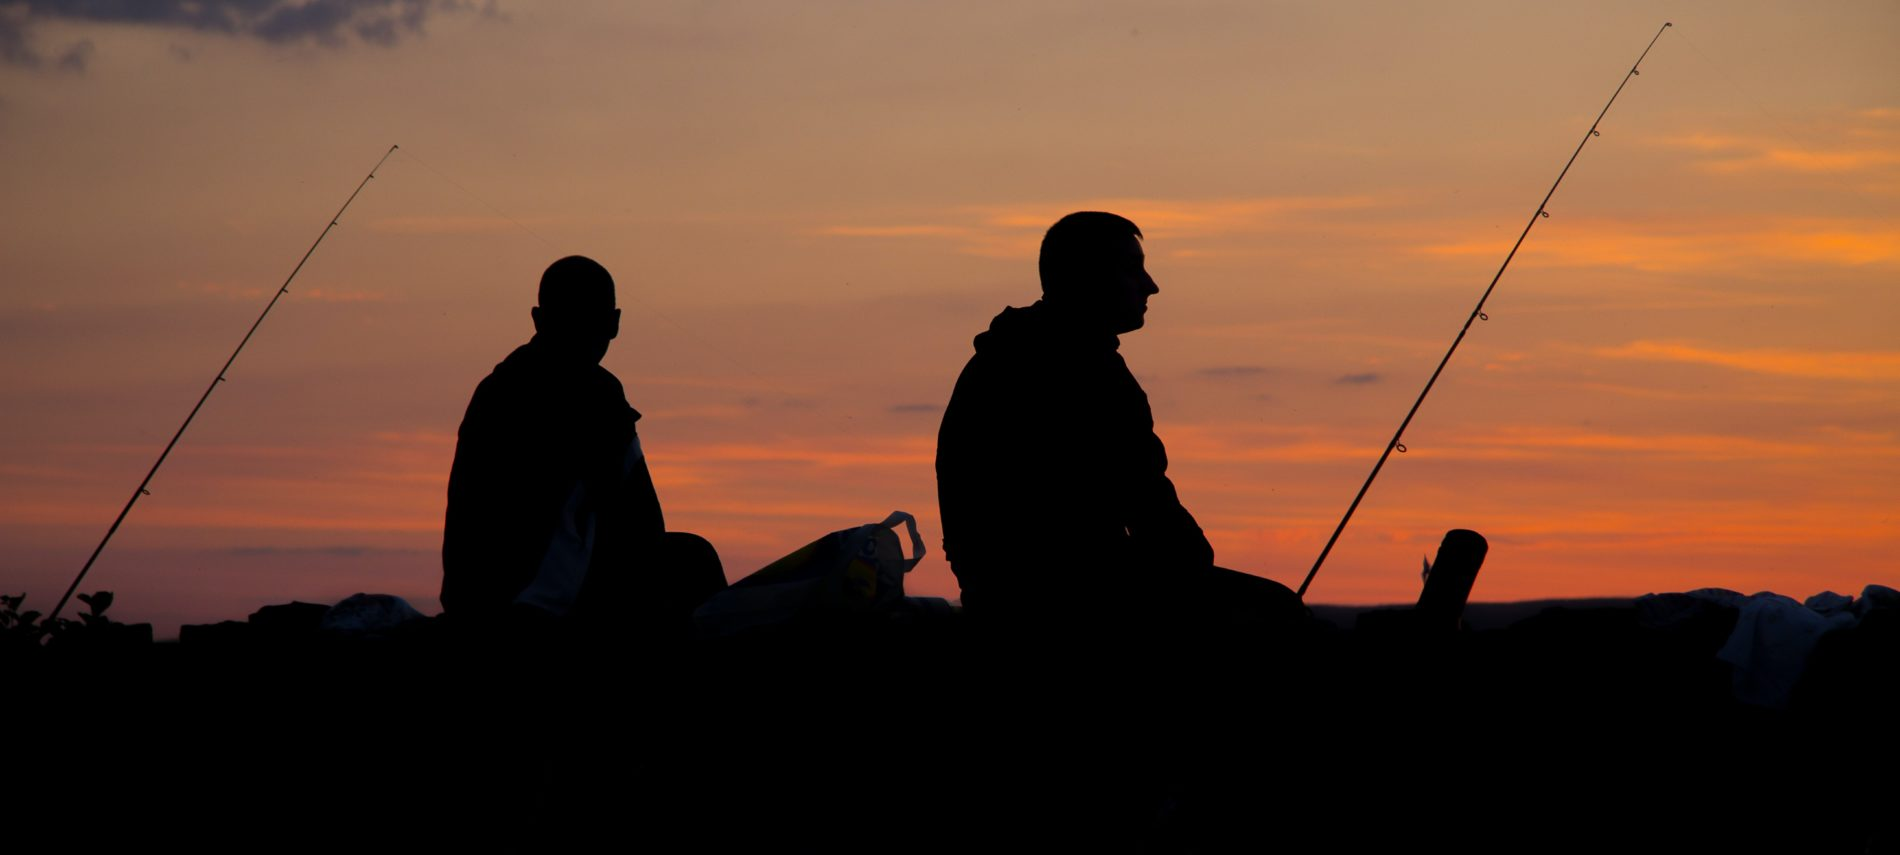 Two fishermen in silhouette at dusk